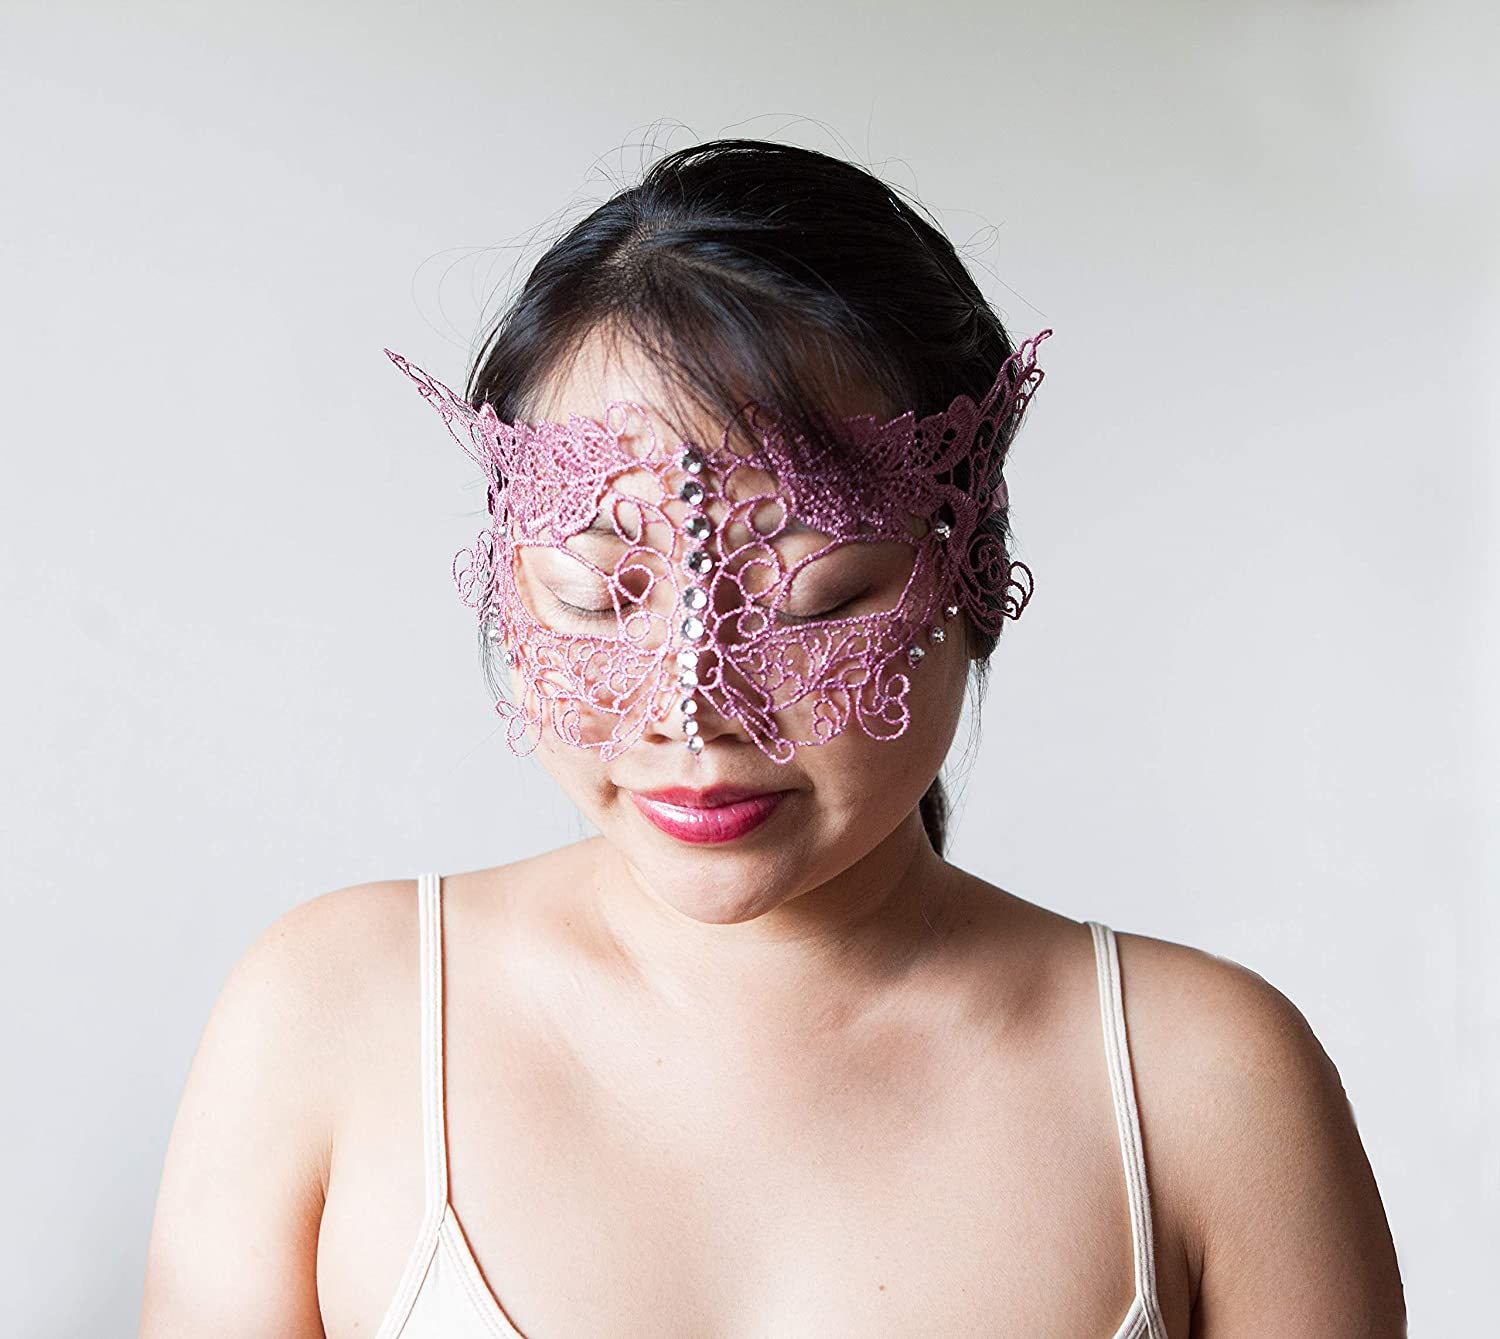 Mardi gras. Hot Pink Venetian Lace Masquerade Mask for Women Soft and Flexible Lace Costume Ball Rhinestones